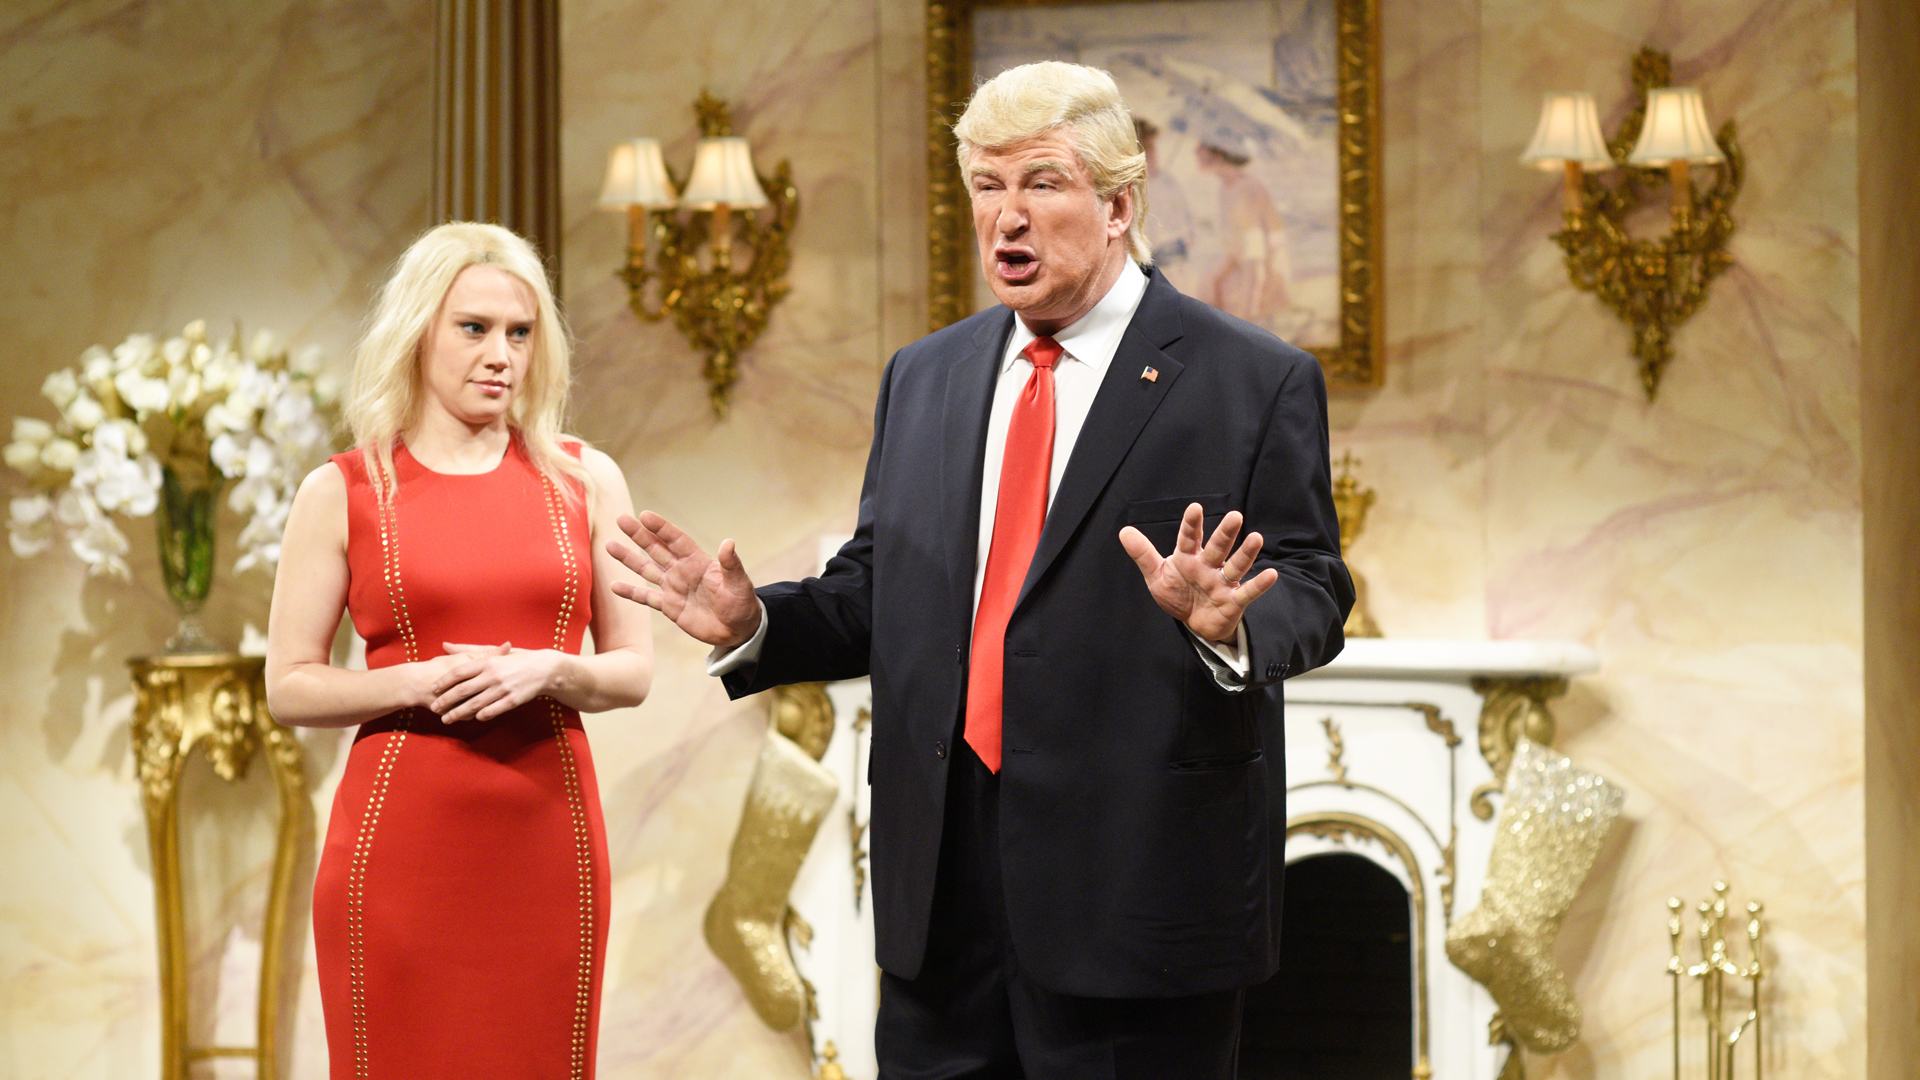 watch saturday night live highlight donald trump christmas cold open nbccom